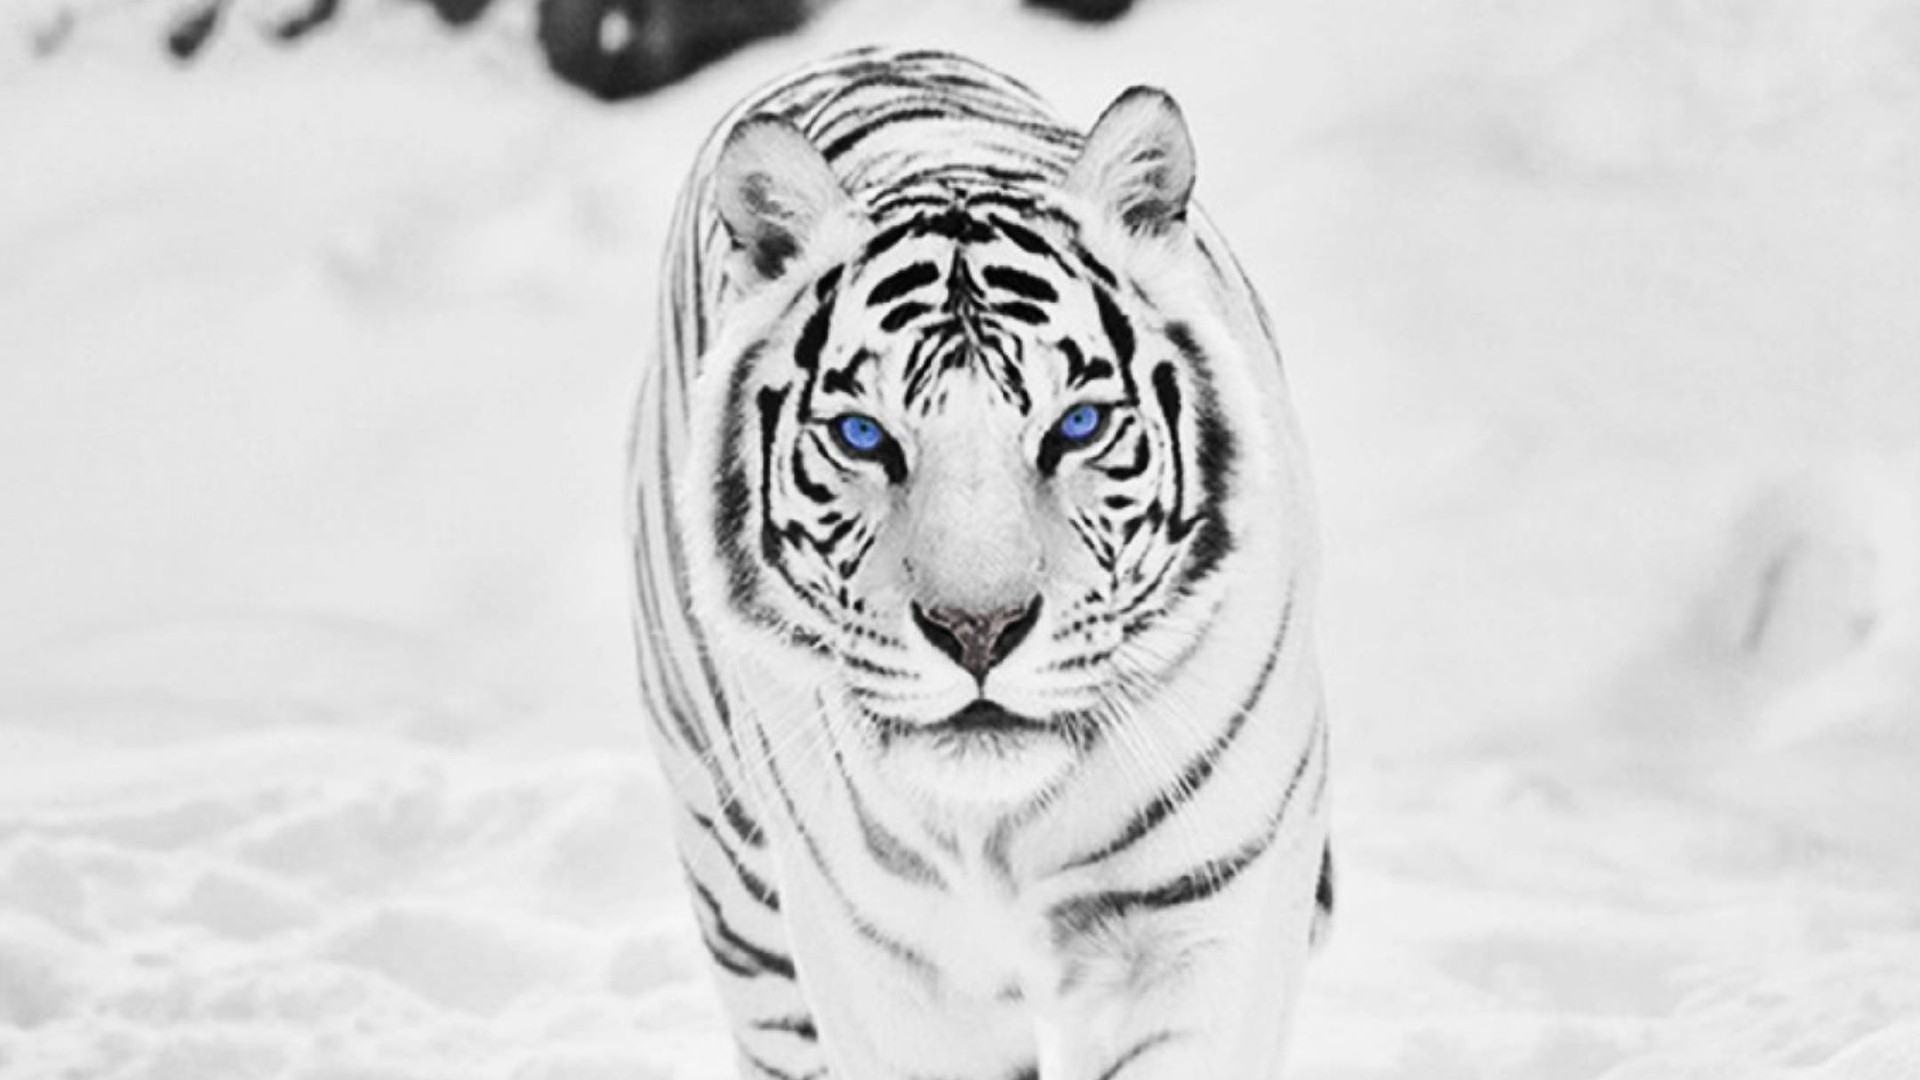 White Tiger Wallpaper Download Free Cool High Resolution